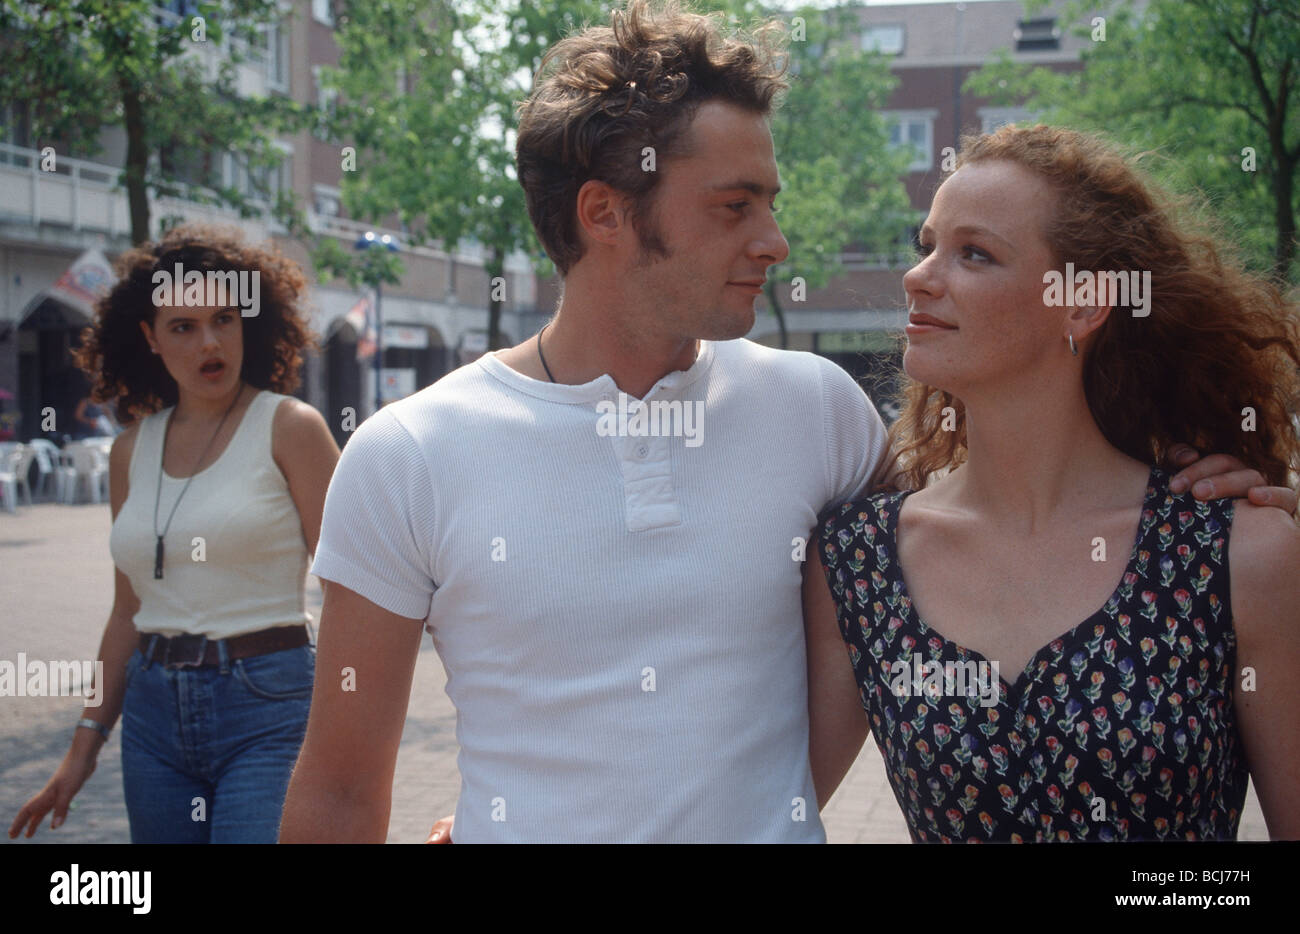 Cheating couple walking in street and being exposed. - Stock Image